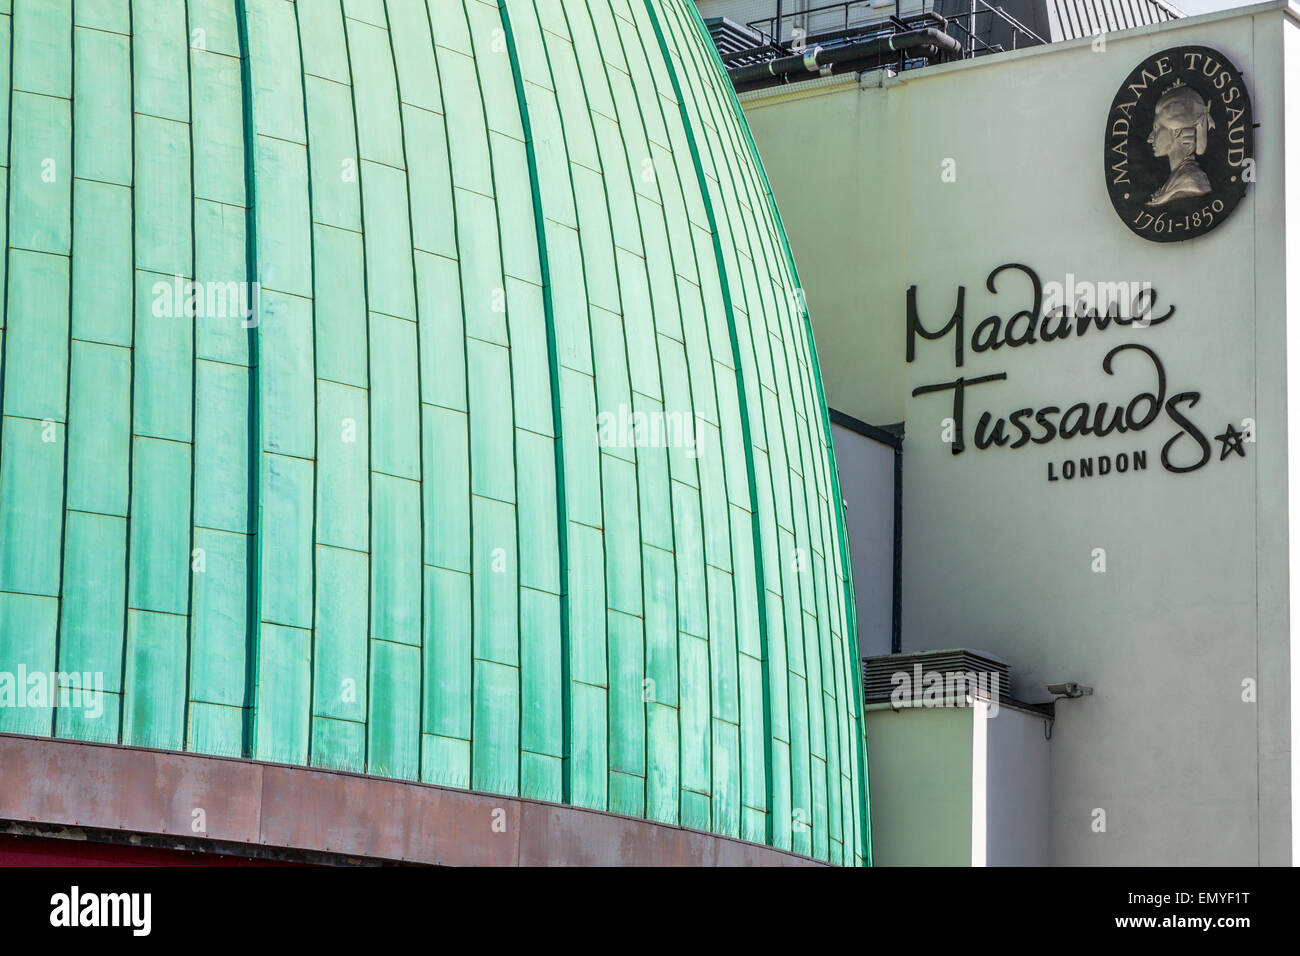 The Former Planetarium renamed The Star Dome next to the Madame Tussaud's branding - Stock Image